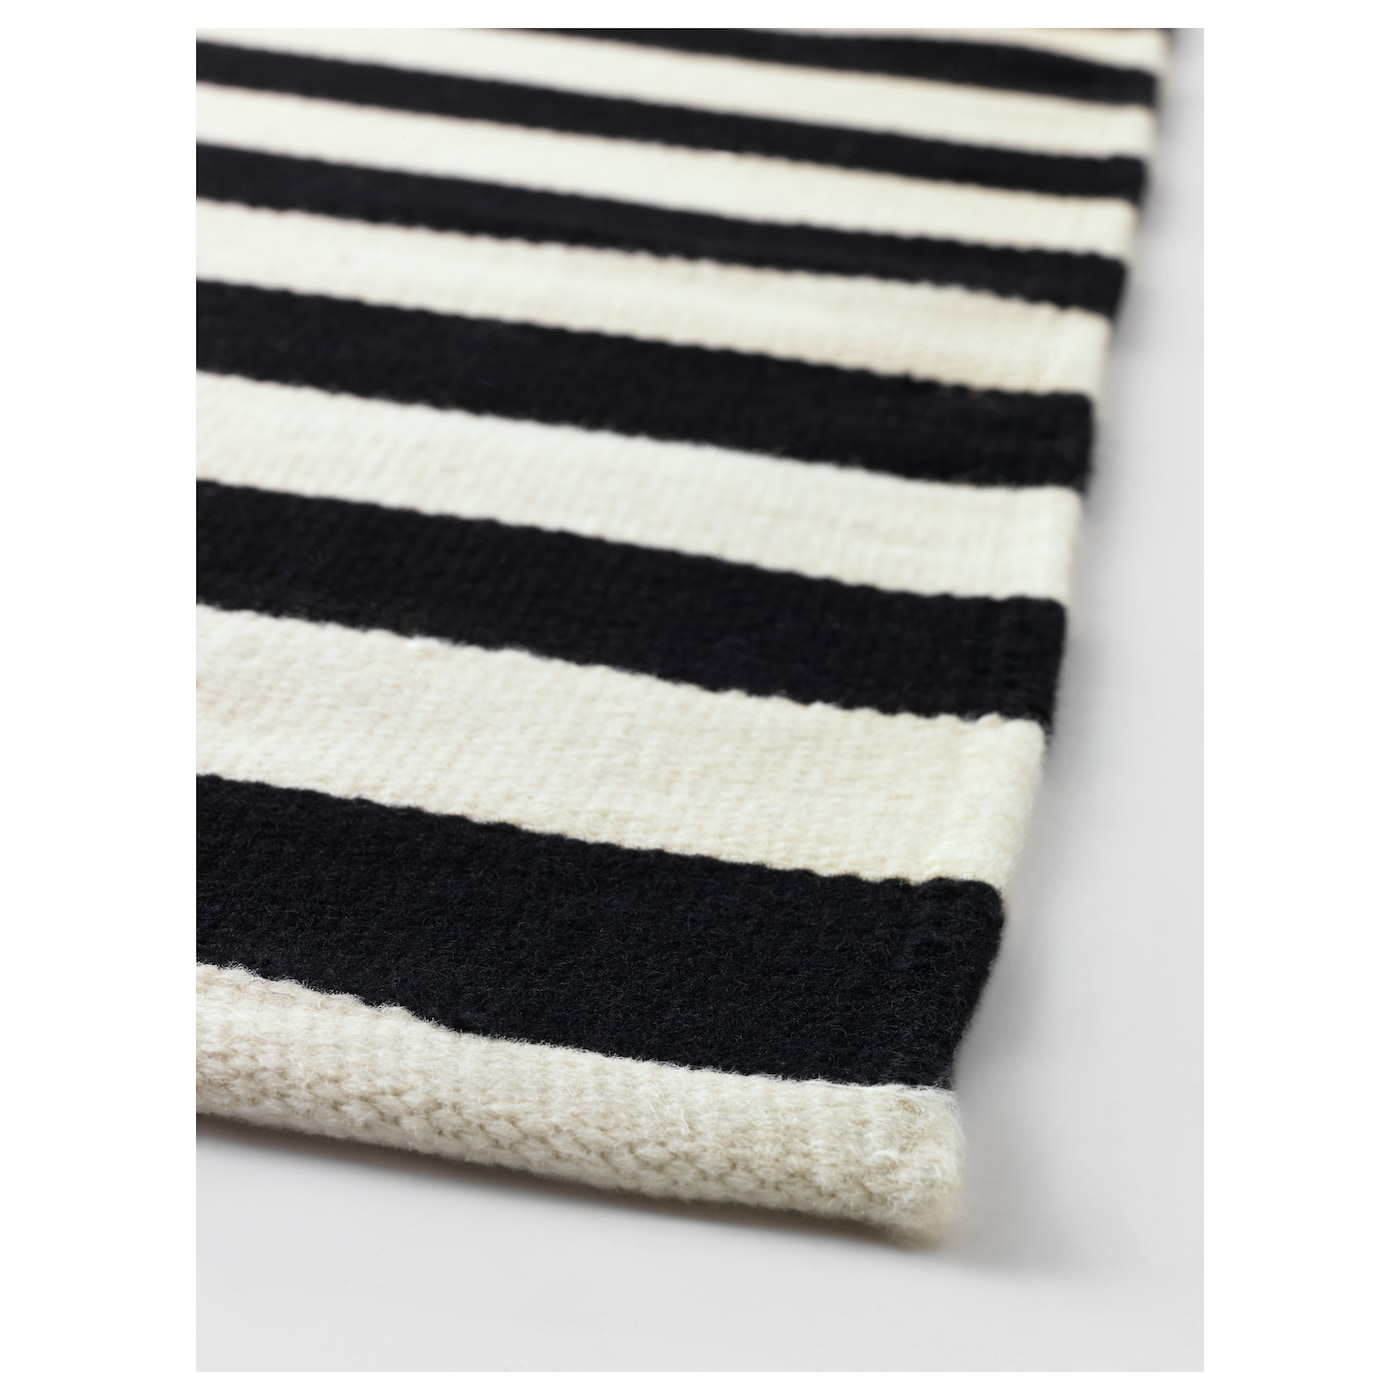 Ikea Stockholm Rug Flatwoven Easy To Vacuum Thanks Its Flat Surface